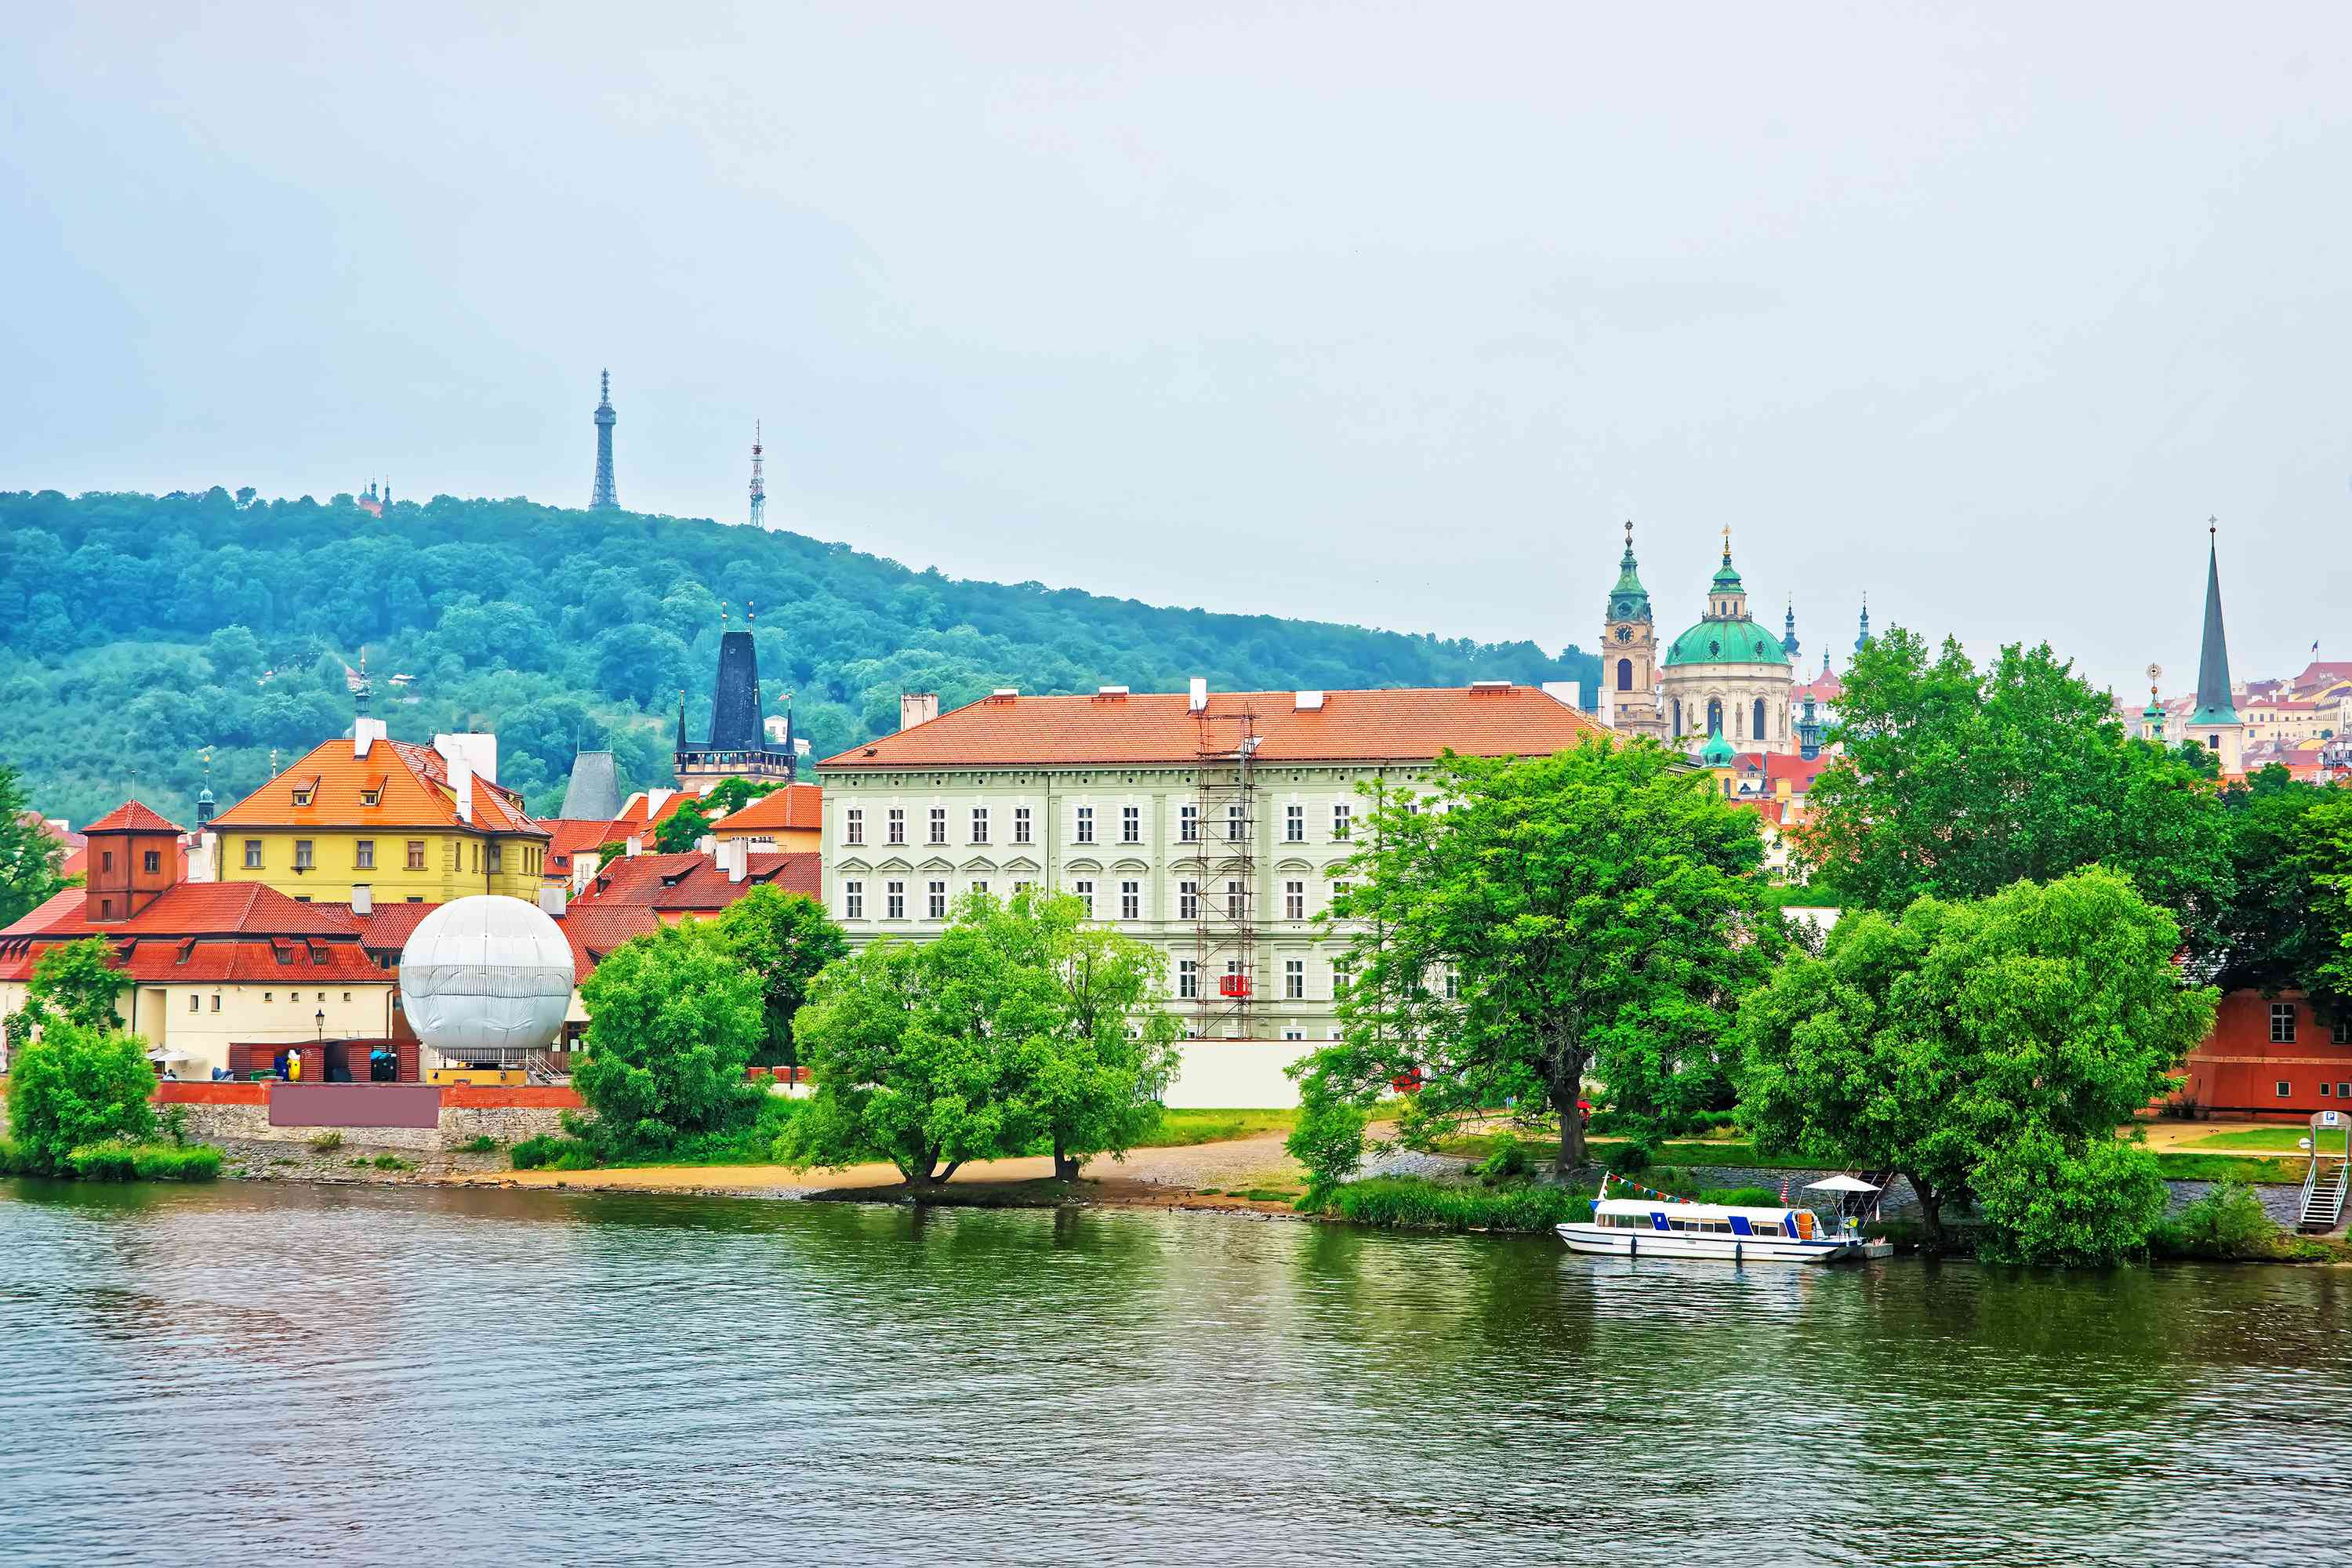 Vltava River with Kafka Museum and Old town of Prague